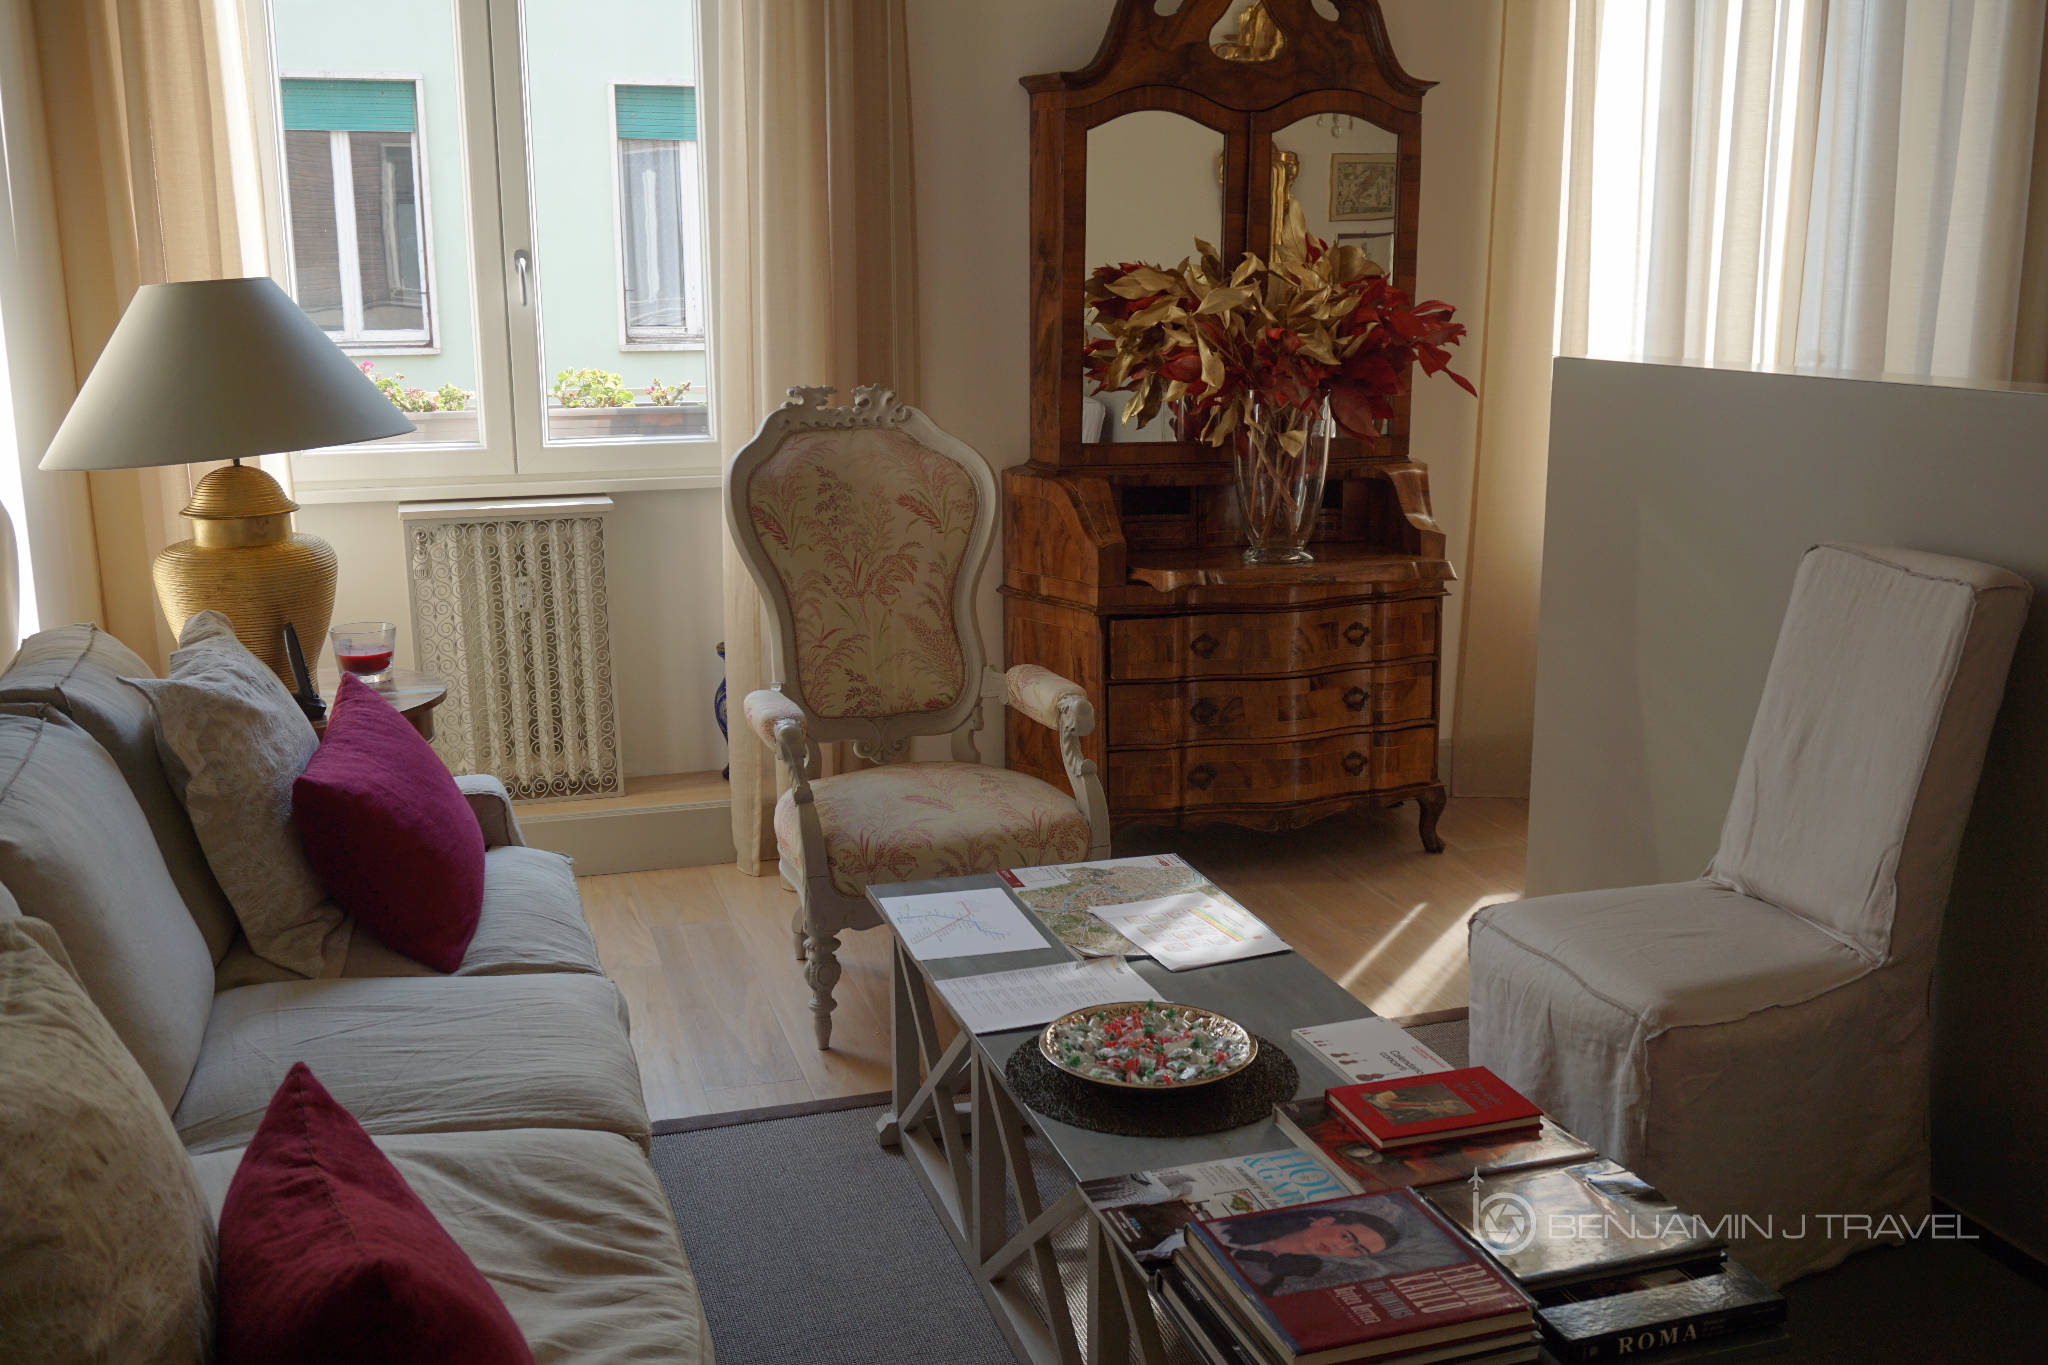 Casa sotgiu guest house rome italy hotel review18 for Casa fabbrini guest mansion roma